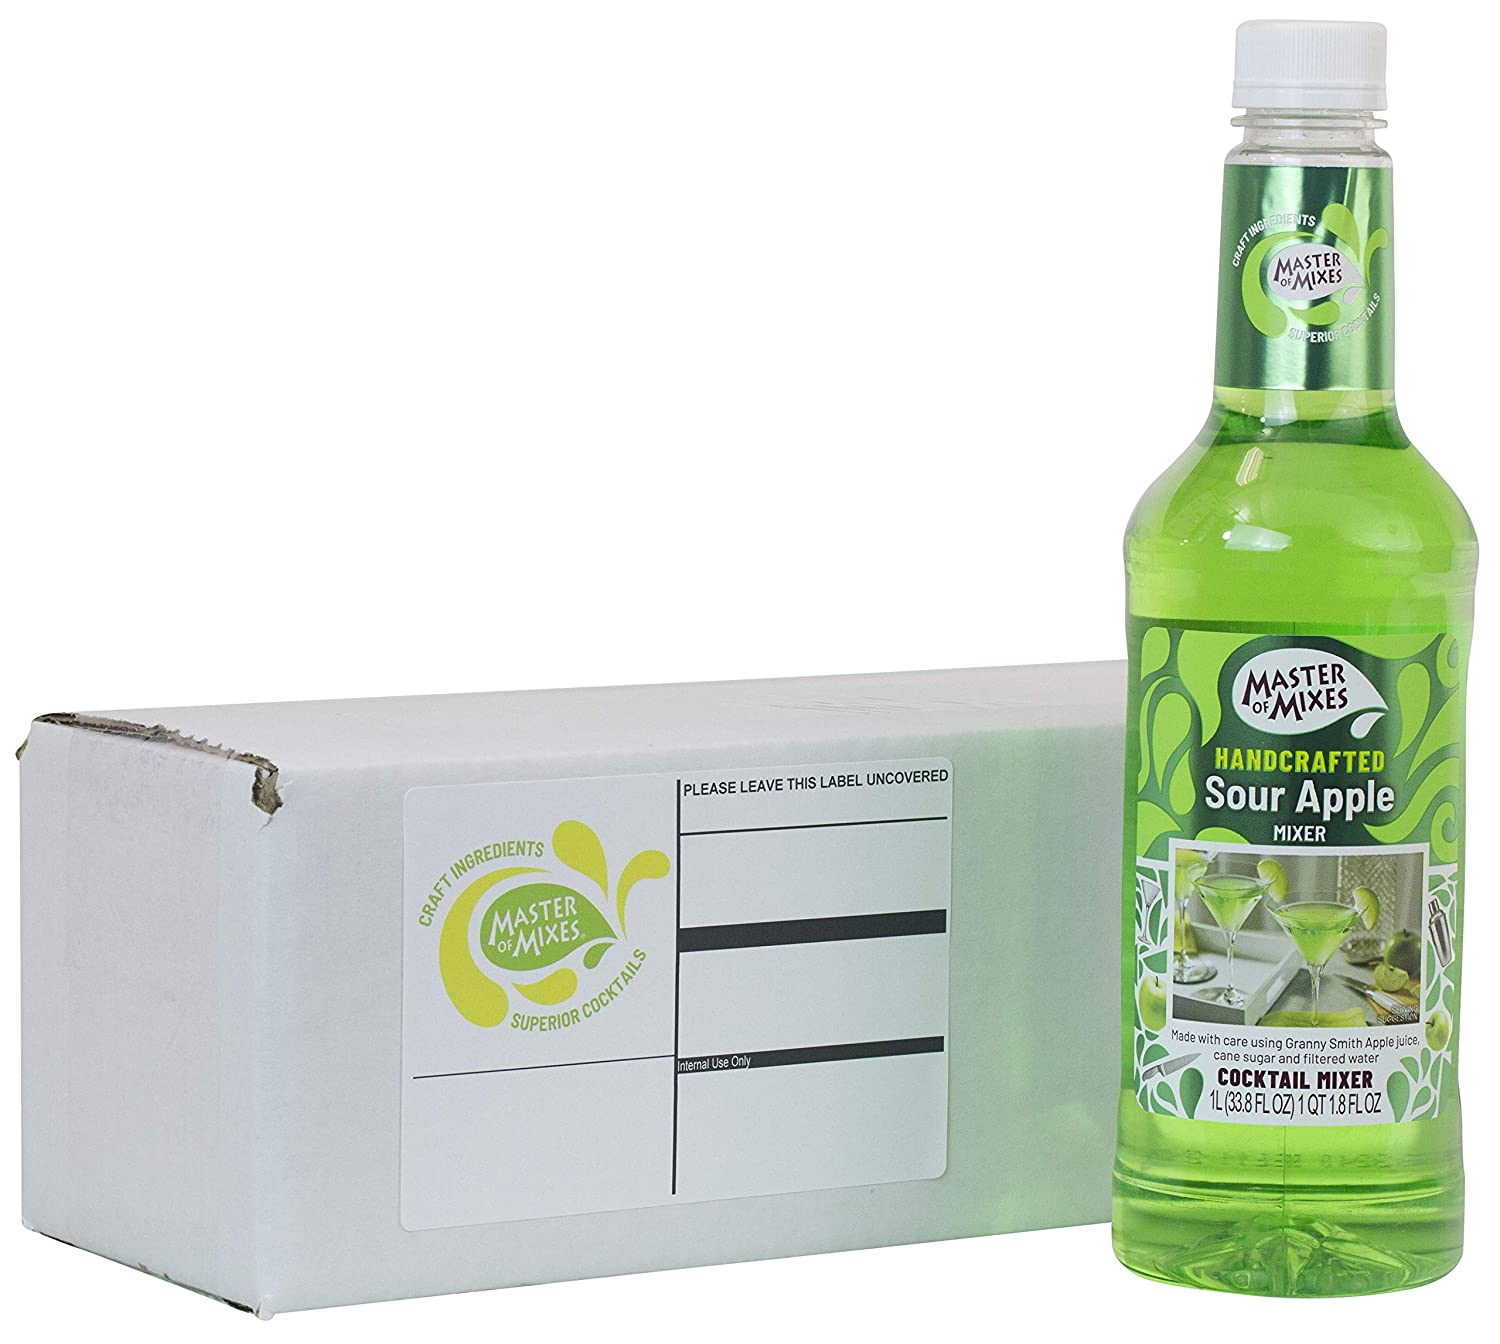 Master of Mixes Sour Apple Martini Drink Mix, Ready To Use, 1 Liter Bottle (33.8 Fl Oz), Individually Boxed